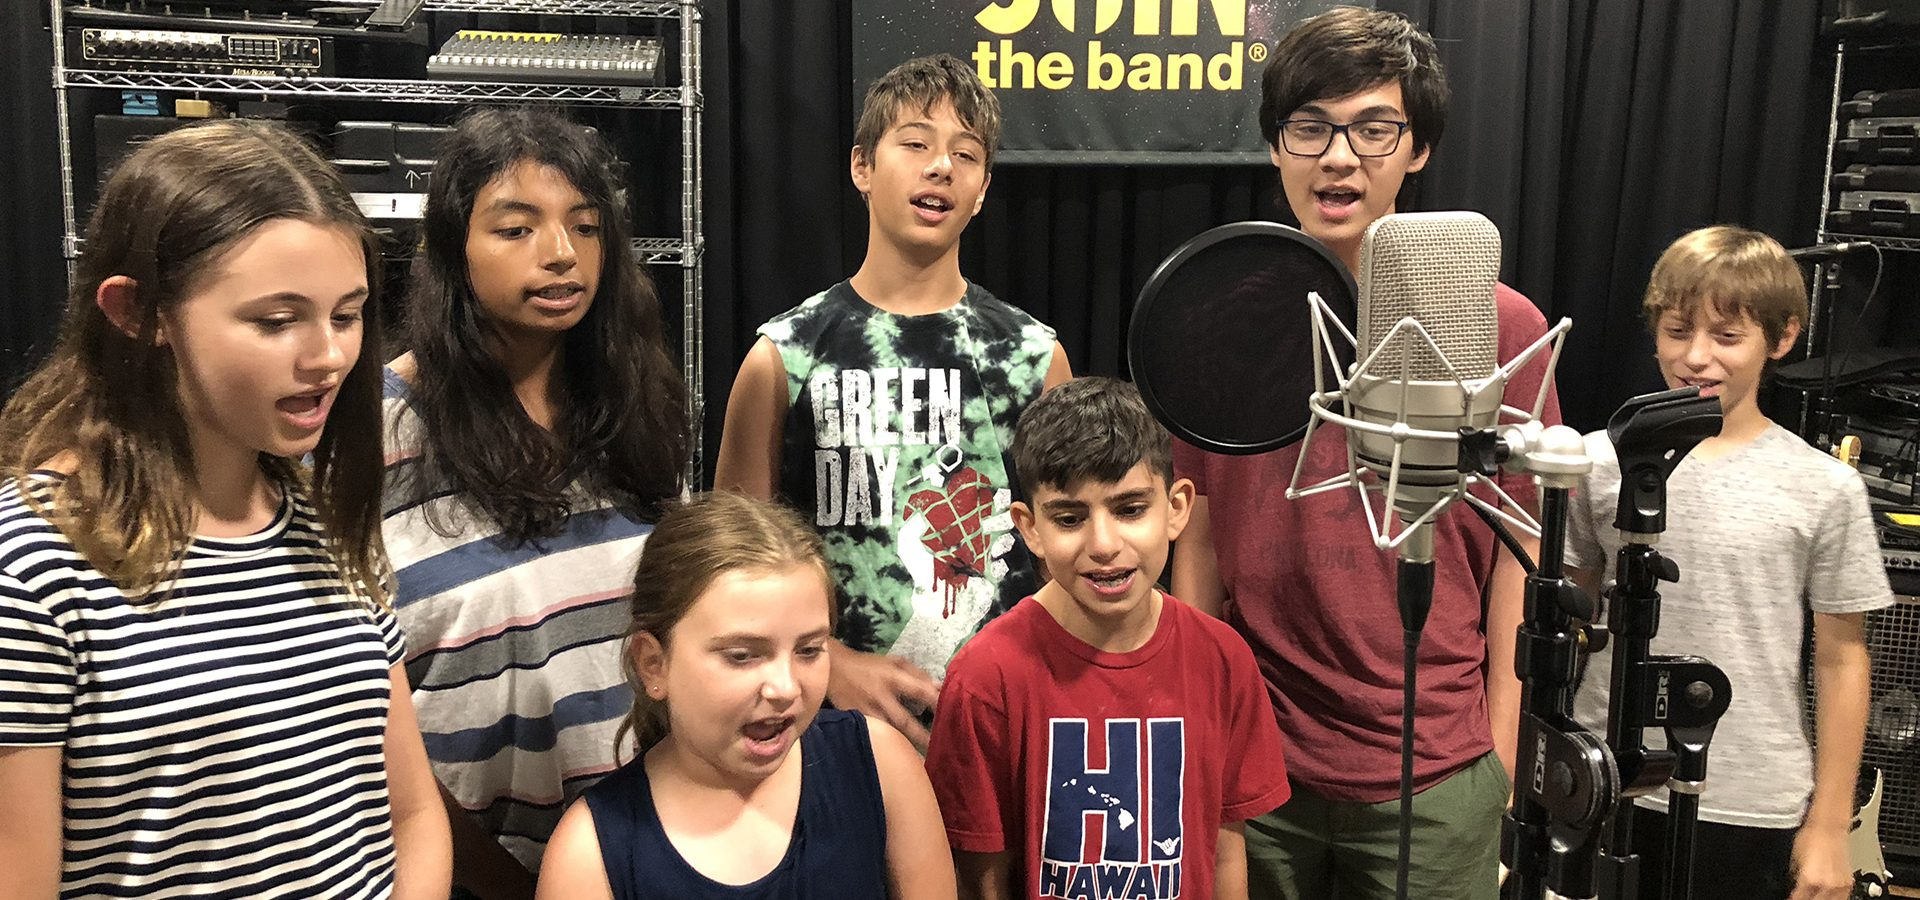 Recording Music Camp - Group Singing - Sherman Oaks, Los Angeles - Join The Band